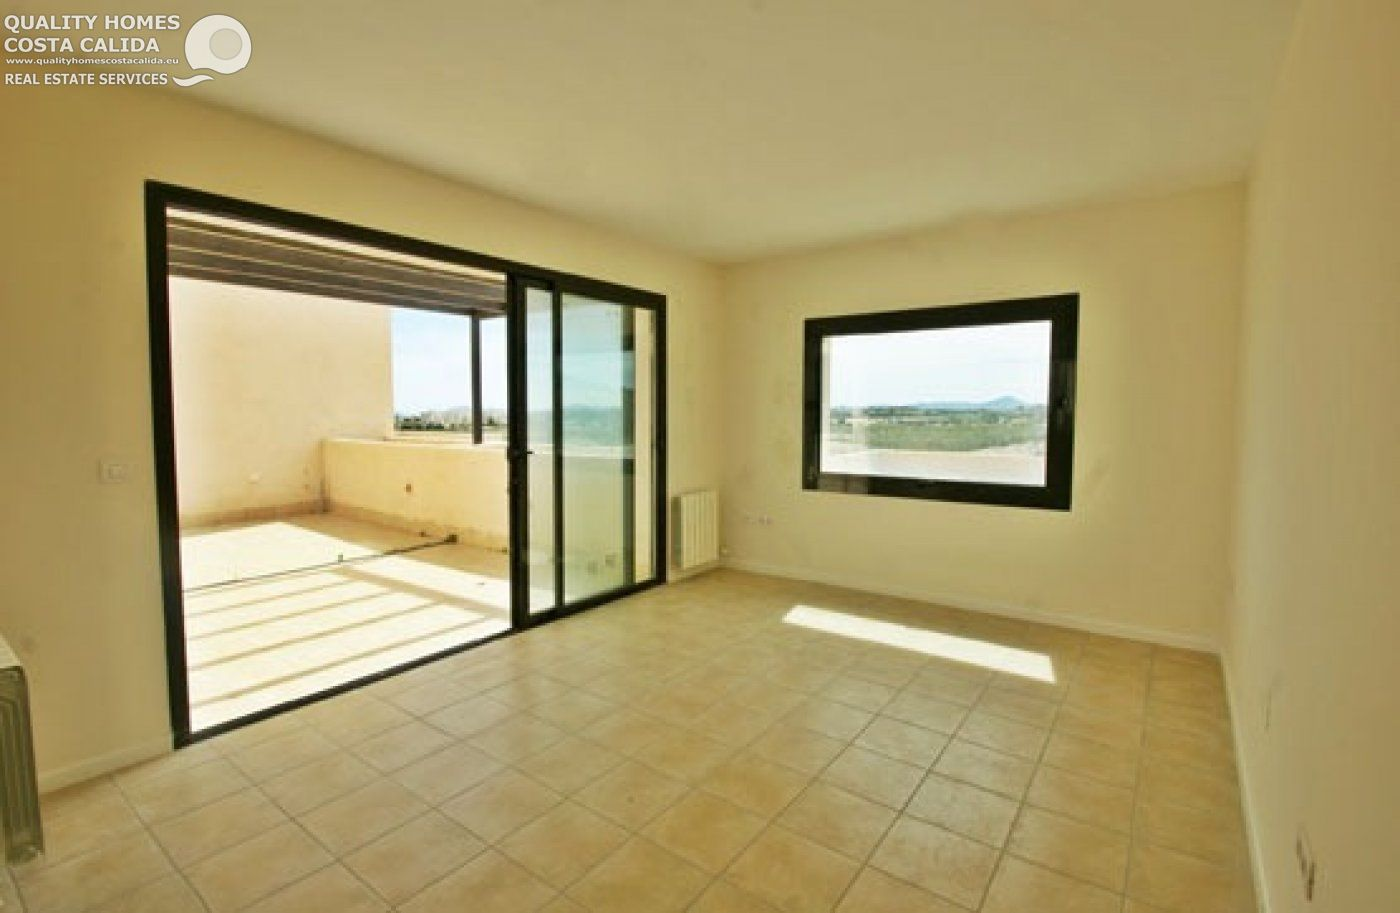 Gallery Image 10 of Maybe the best investment in the Murcia Region